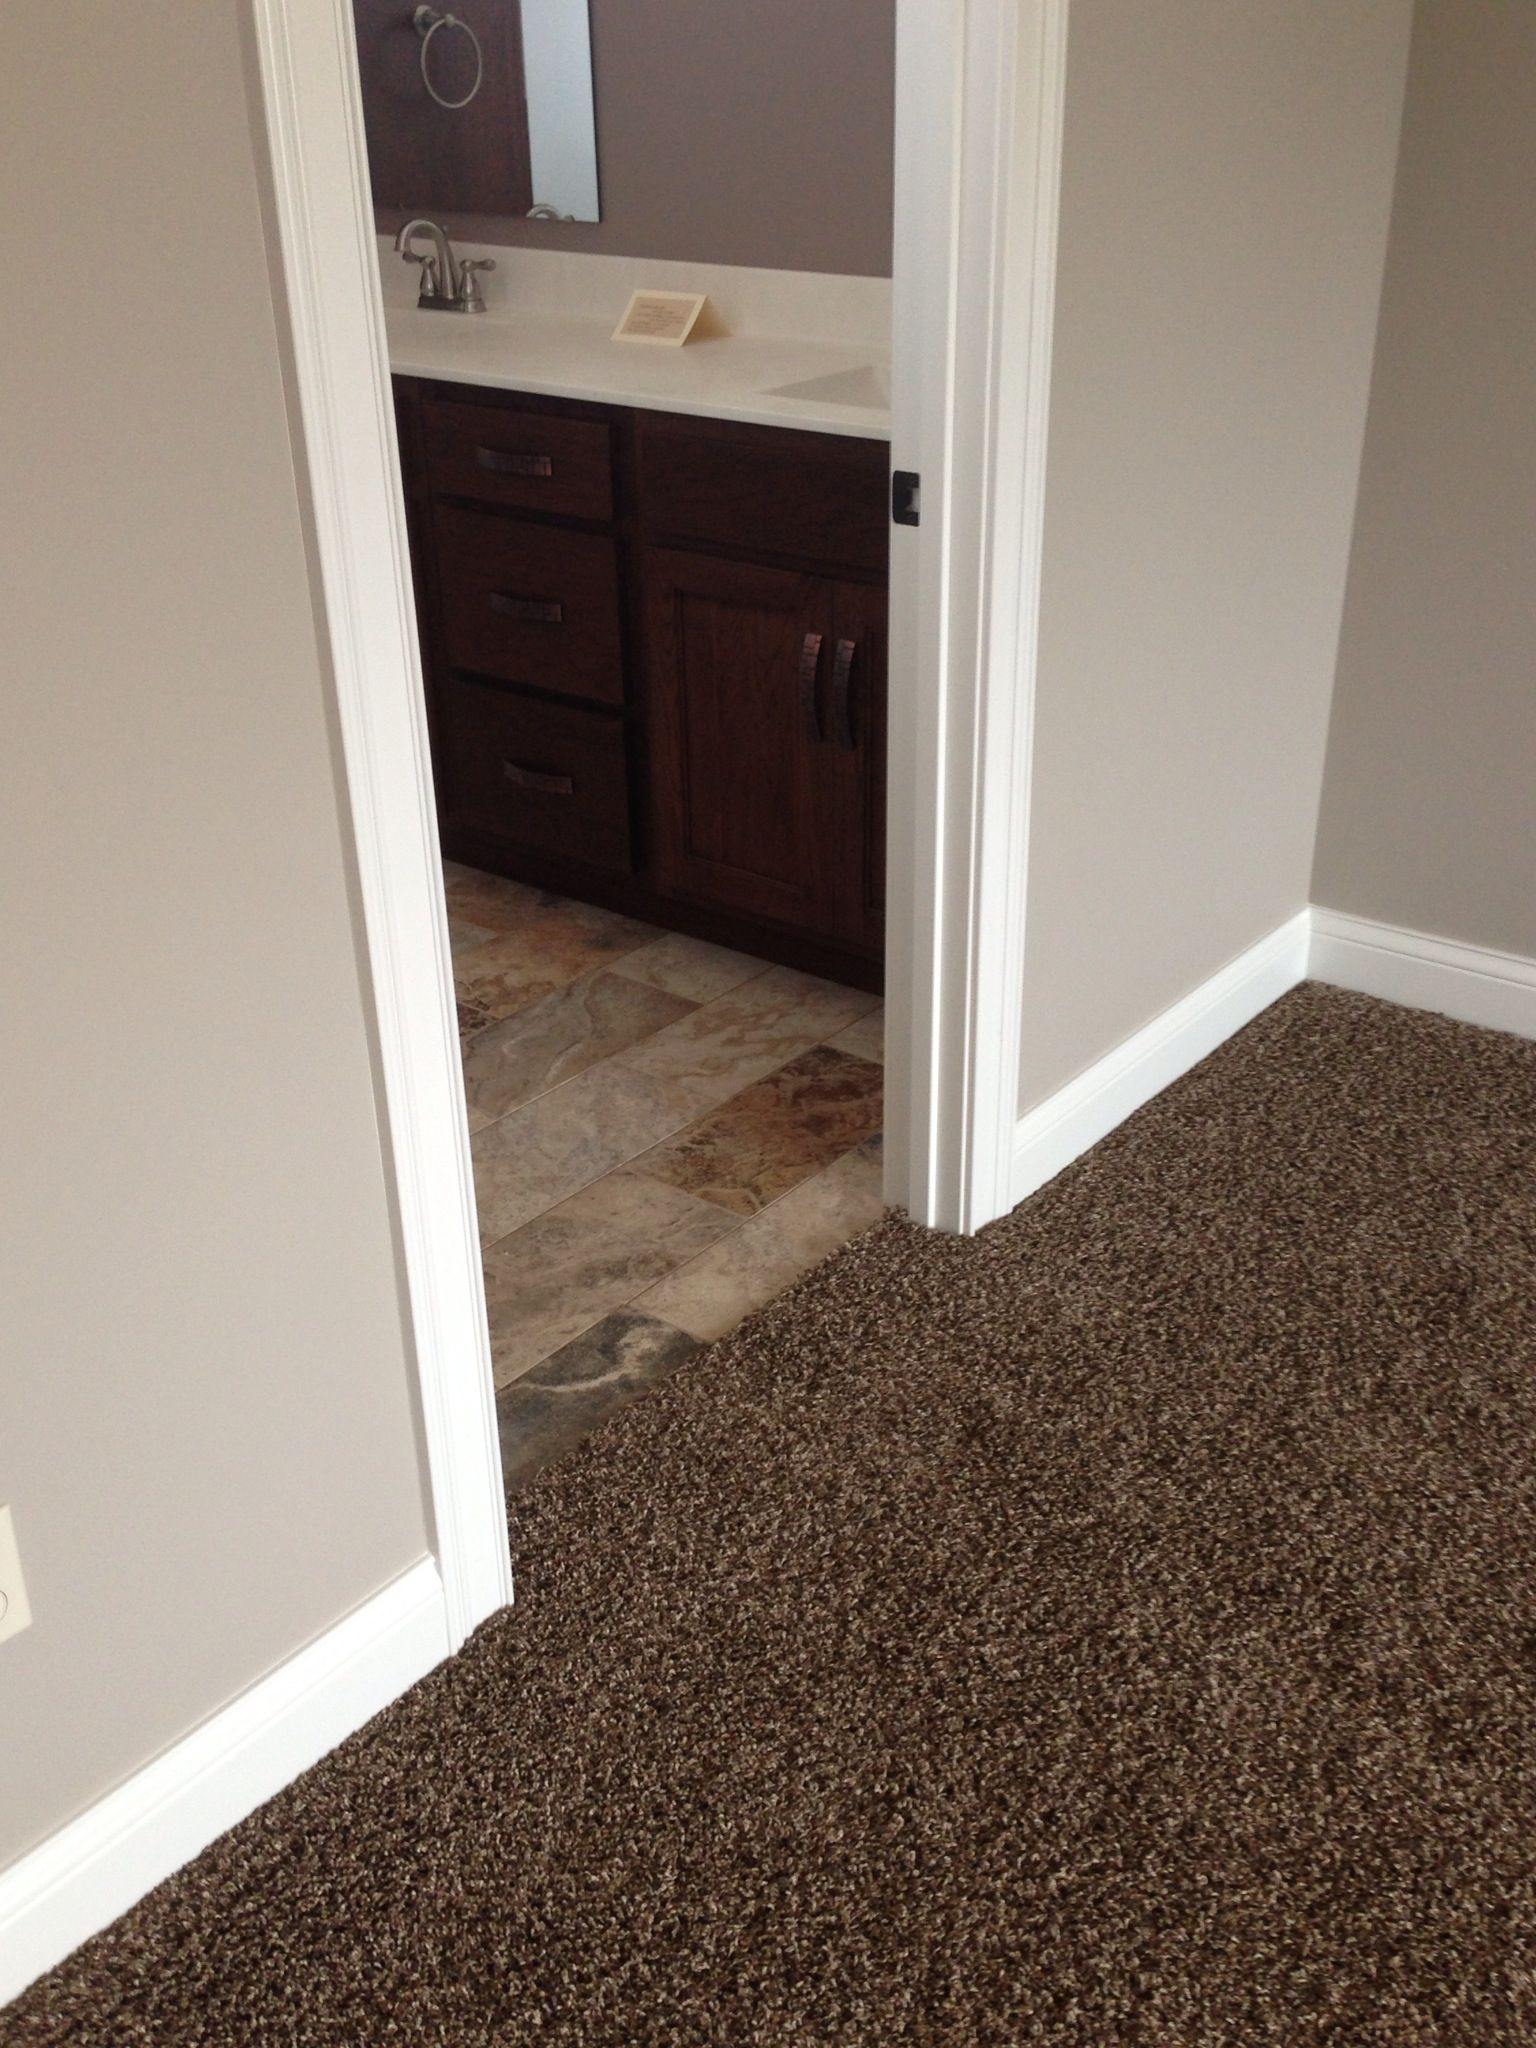 Walls Like Carpet Looks Much Darker In This Pic And Tile Colors With The Dark Brown BedroomBrown Living